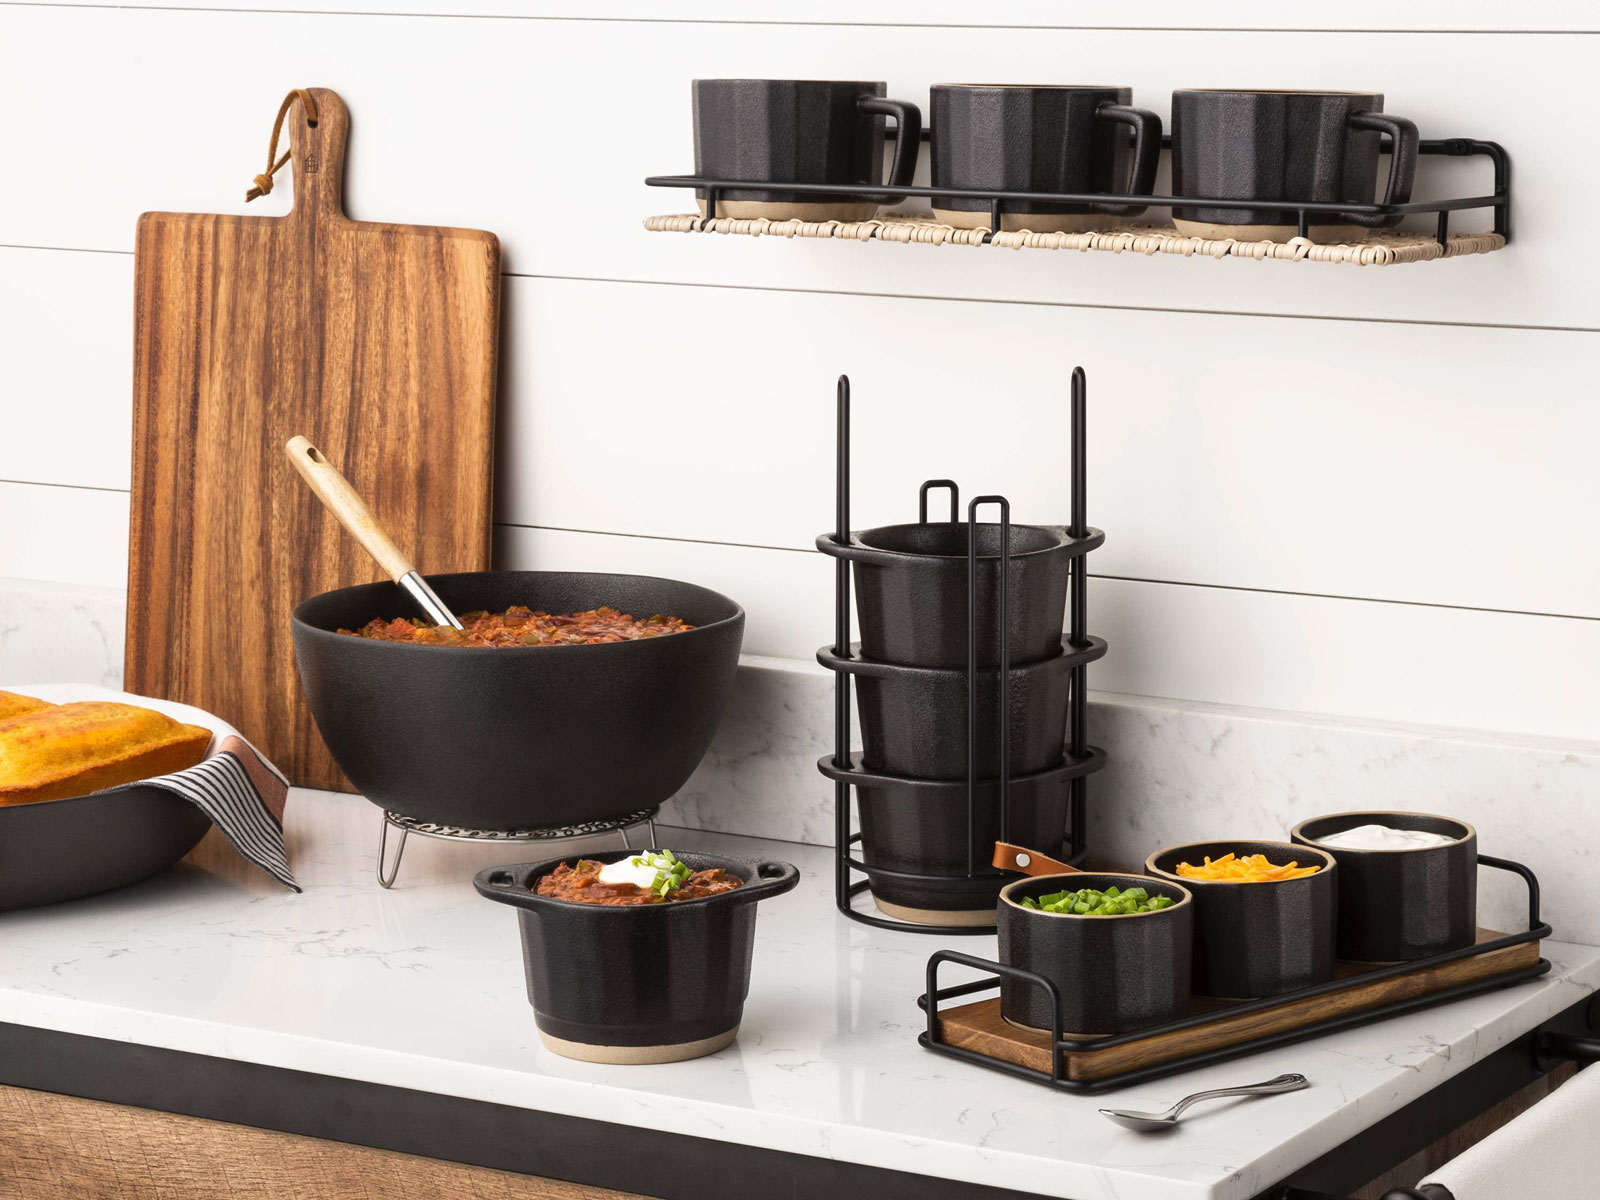 hearth and hand kitchen fall 2019 stoneware